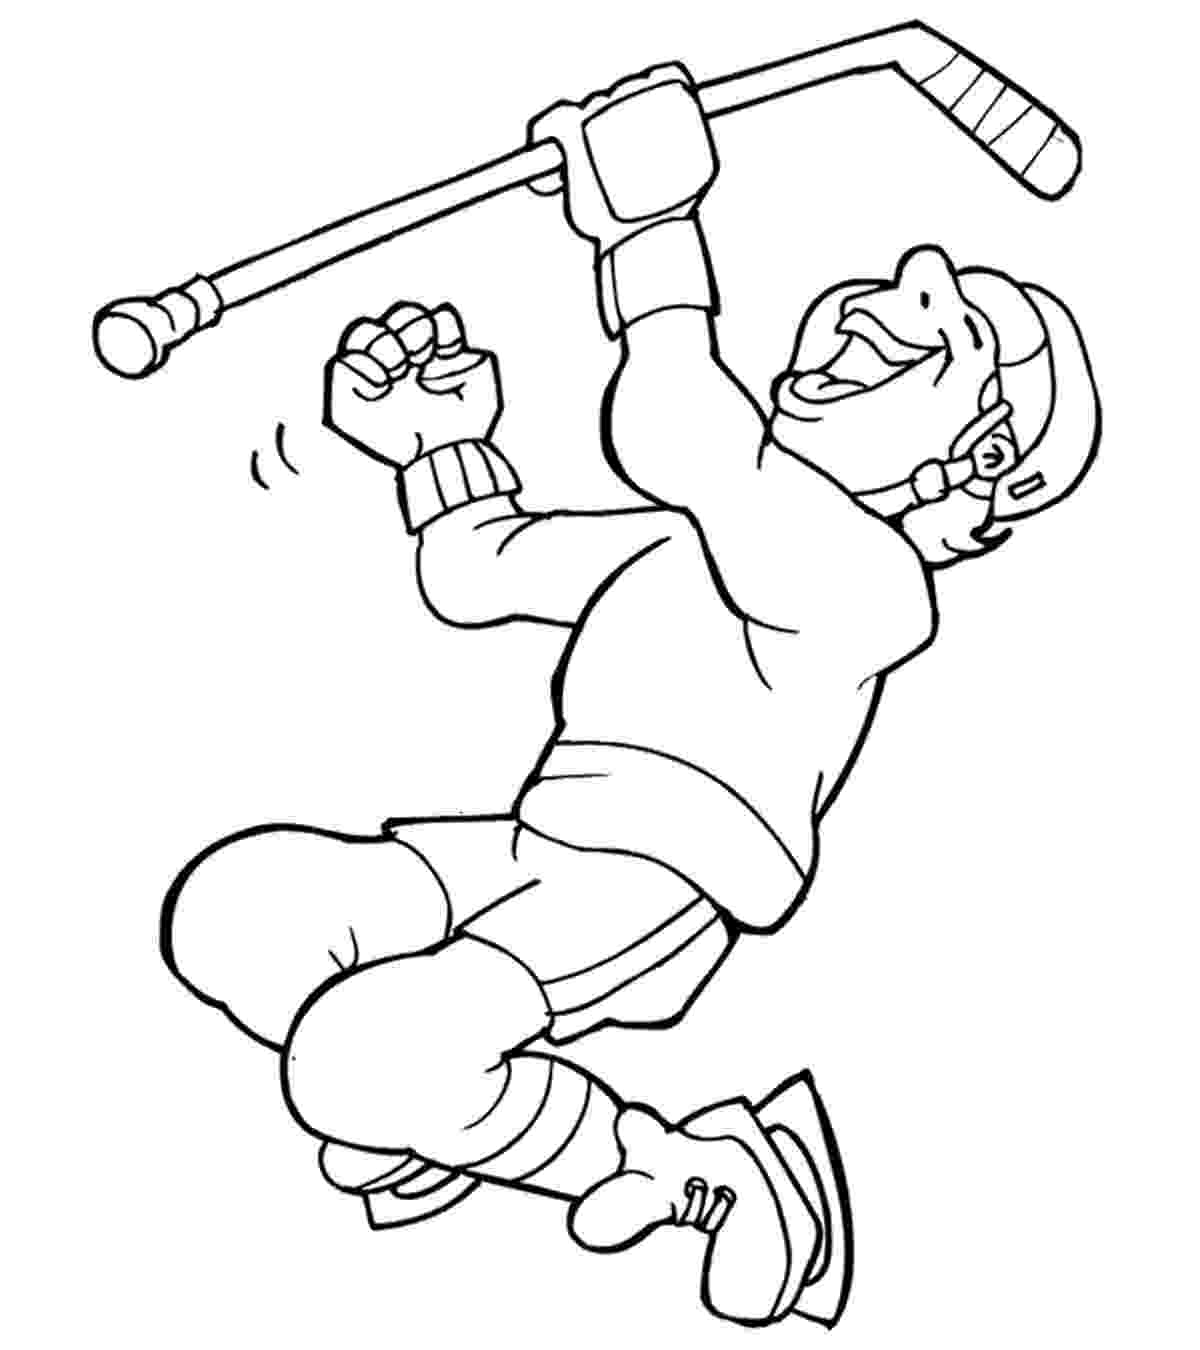 colouring pages hockey free printable hockey coloring pages for kids pages hockey colouring 1 1